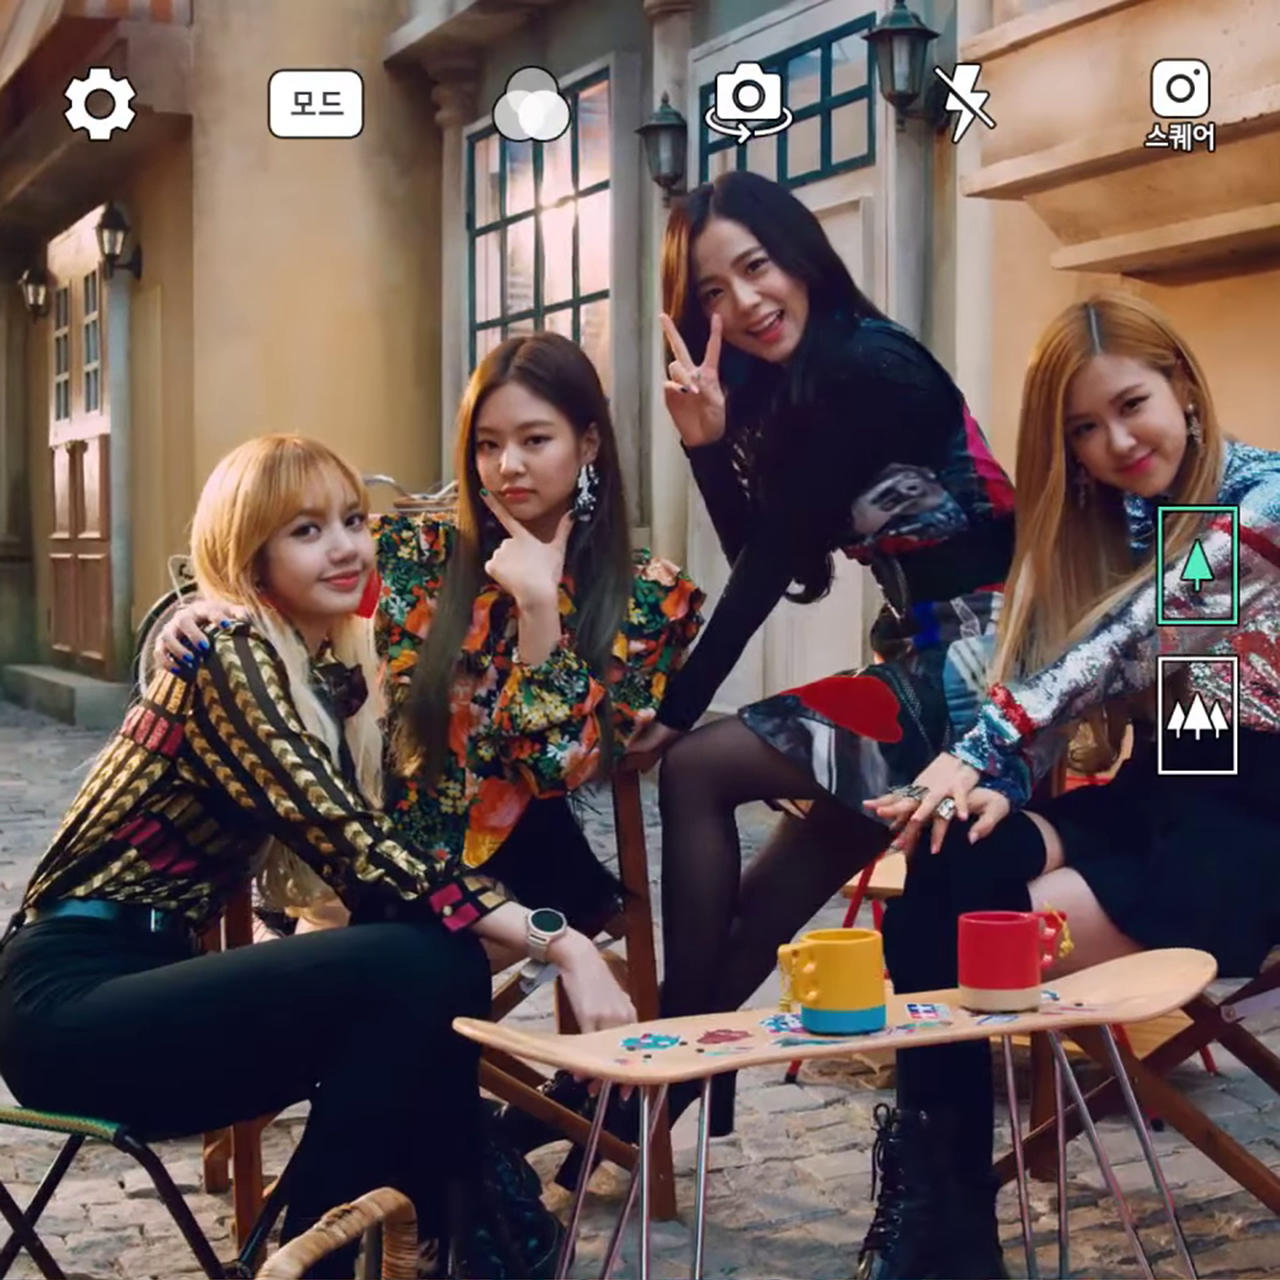 [ENDORSEMENT] BLACKPINK for LG G6